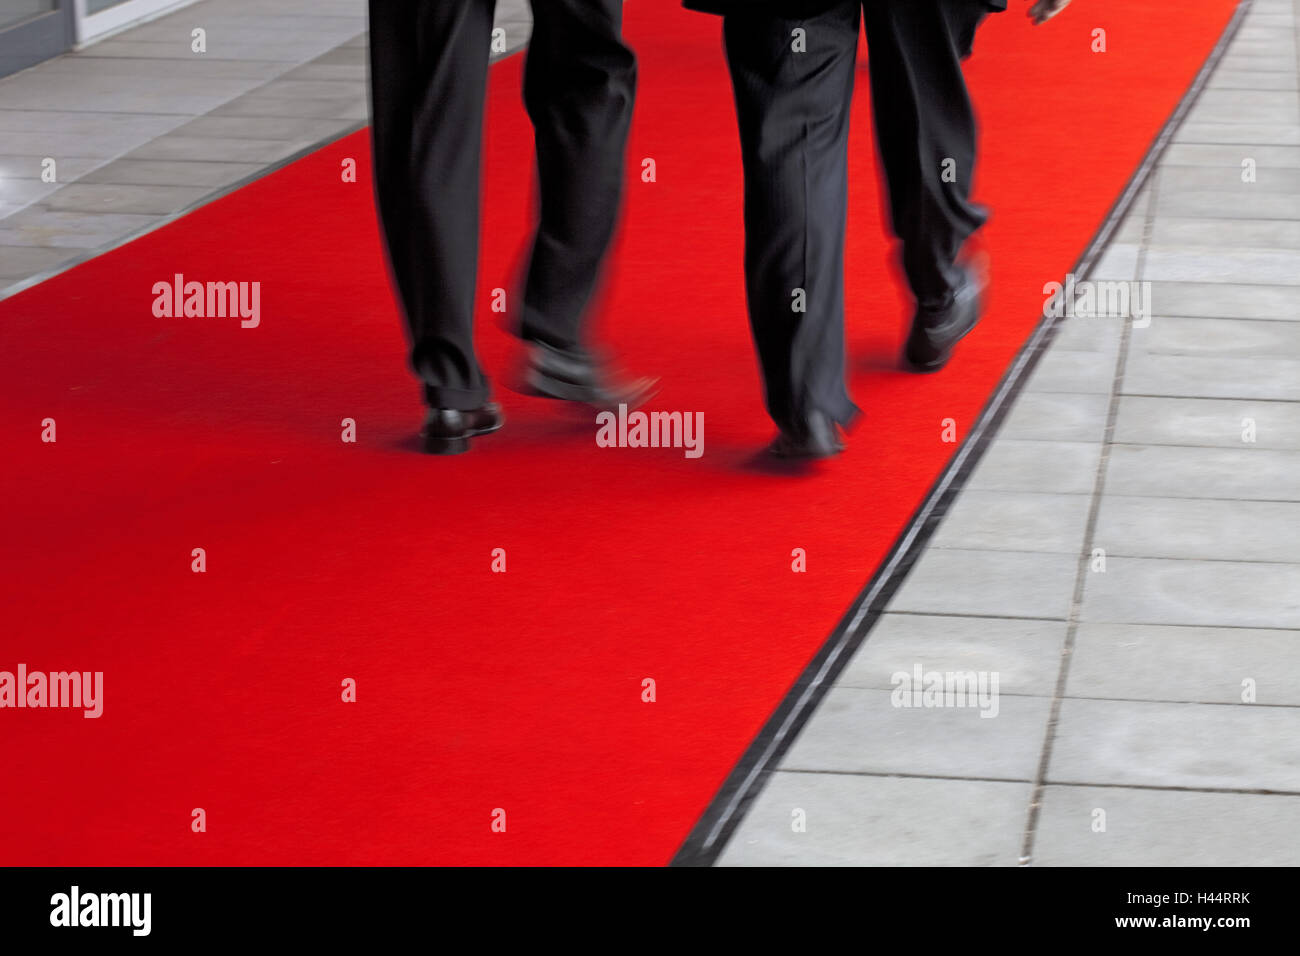 Business people on a red carpet, detail, - Stock Image